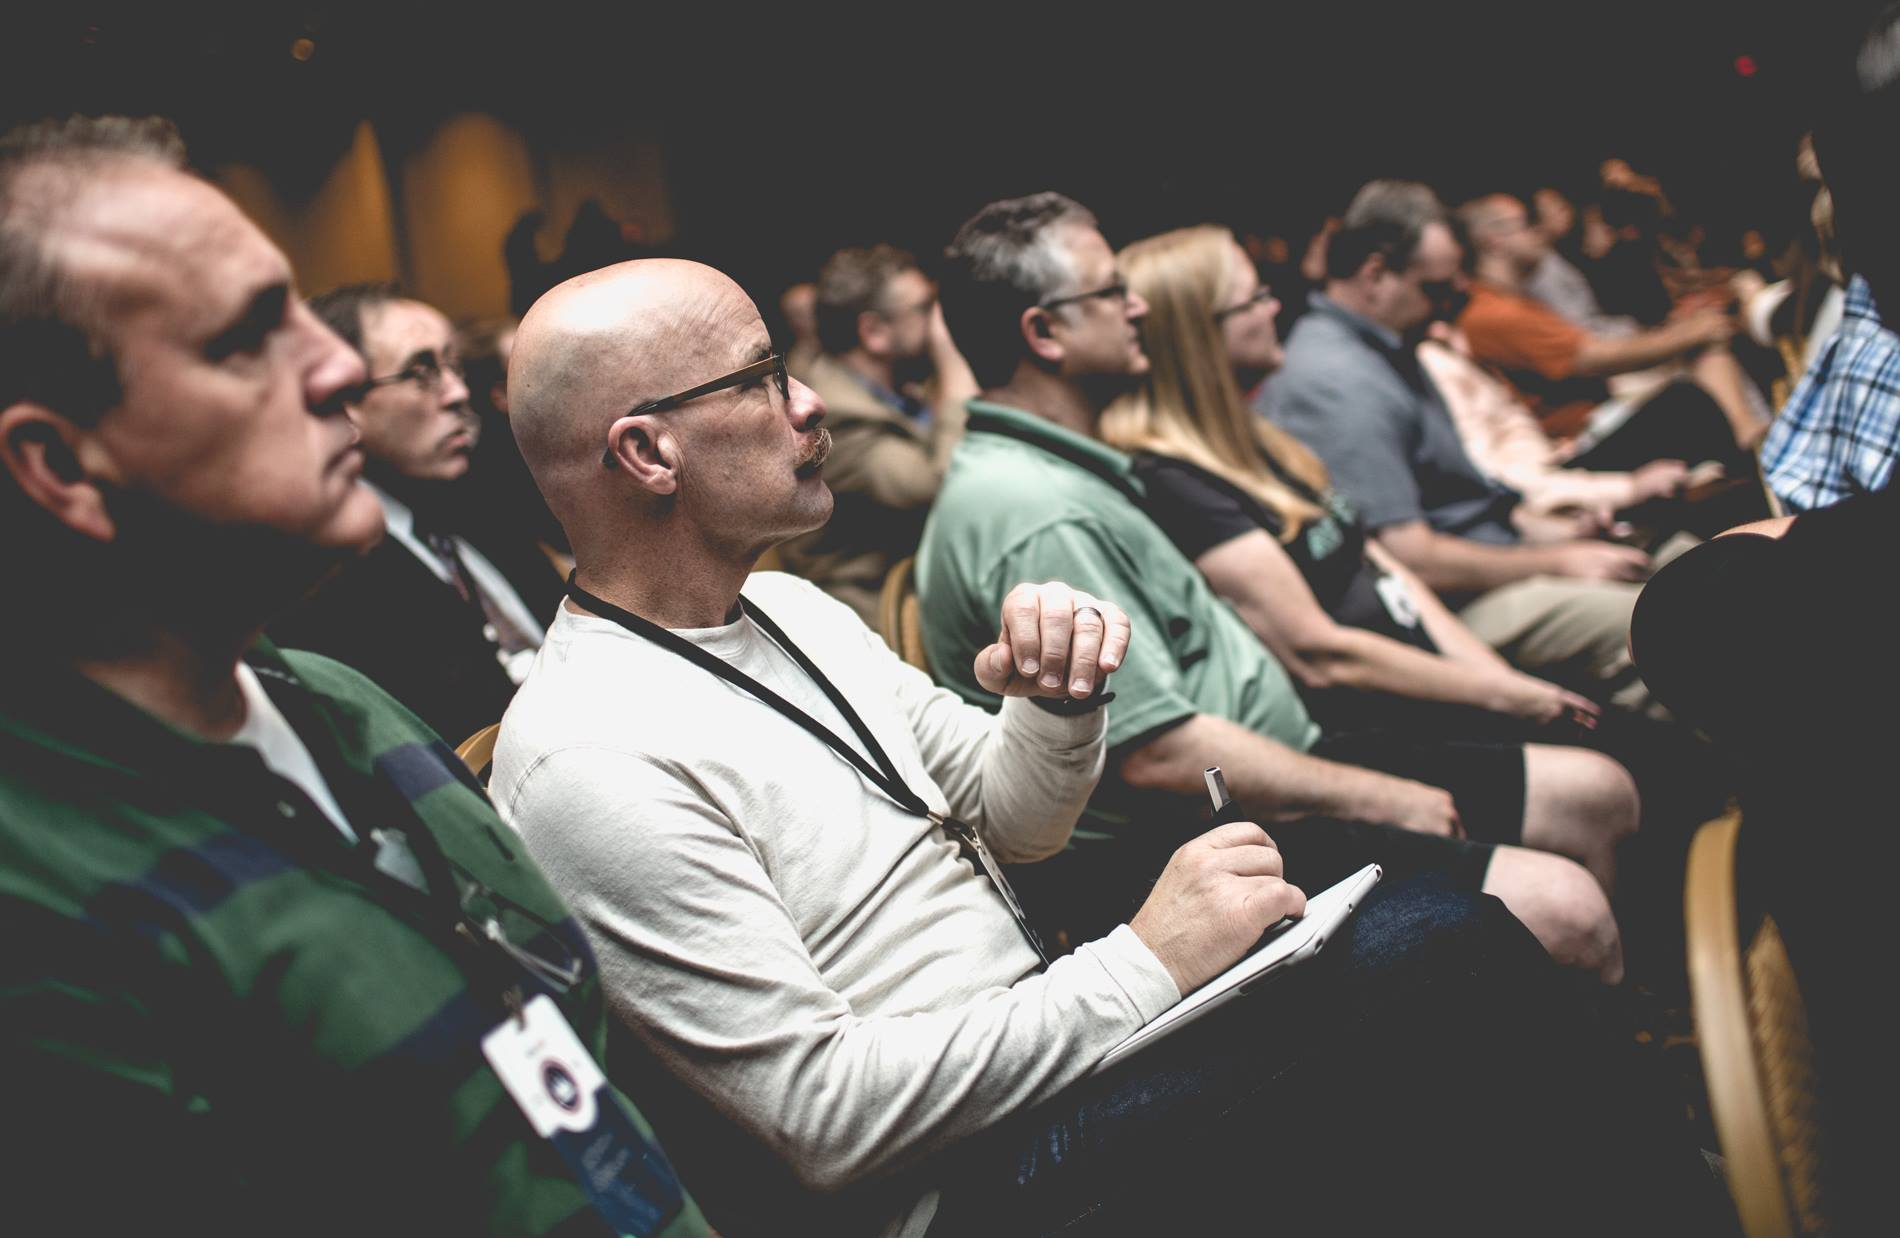 Attendees listen to a speaker during the 2014 ERLC National Conference.